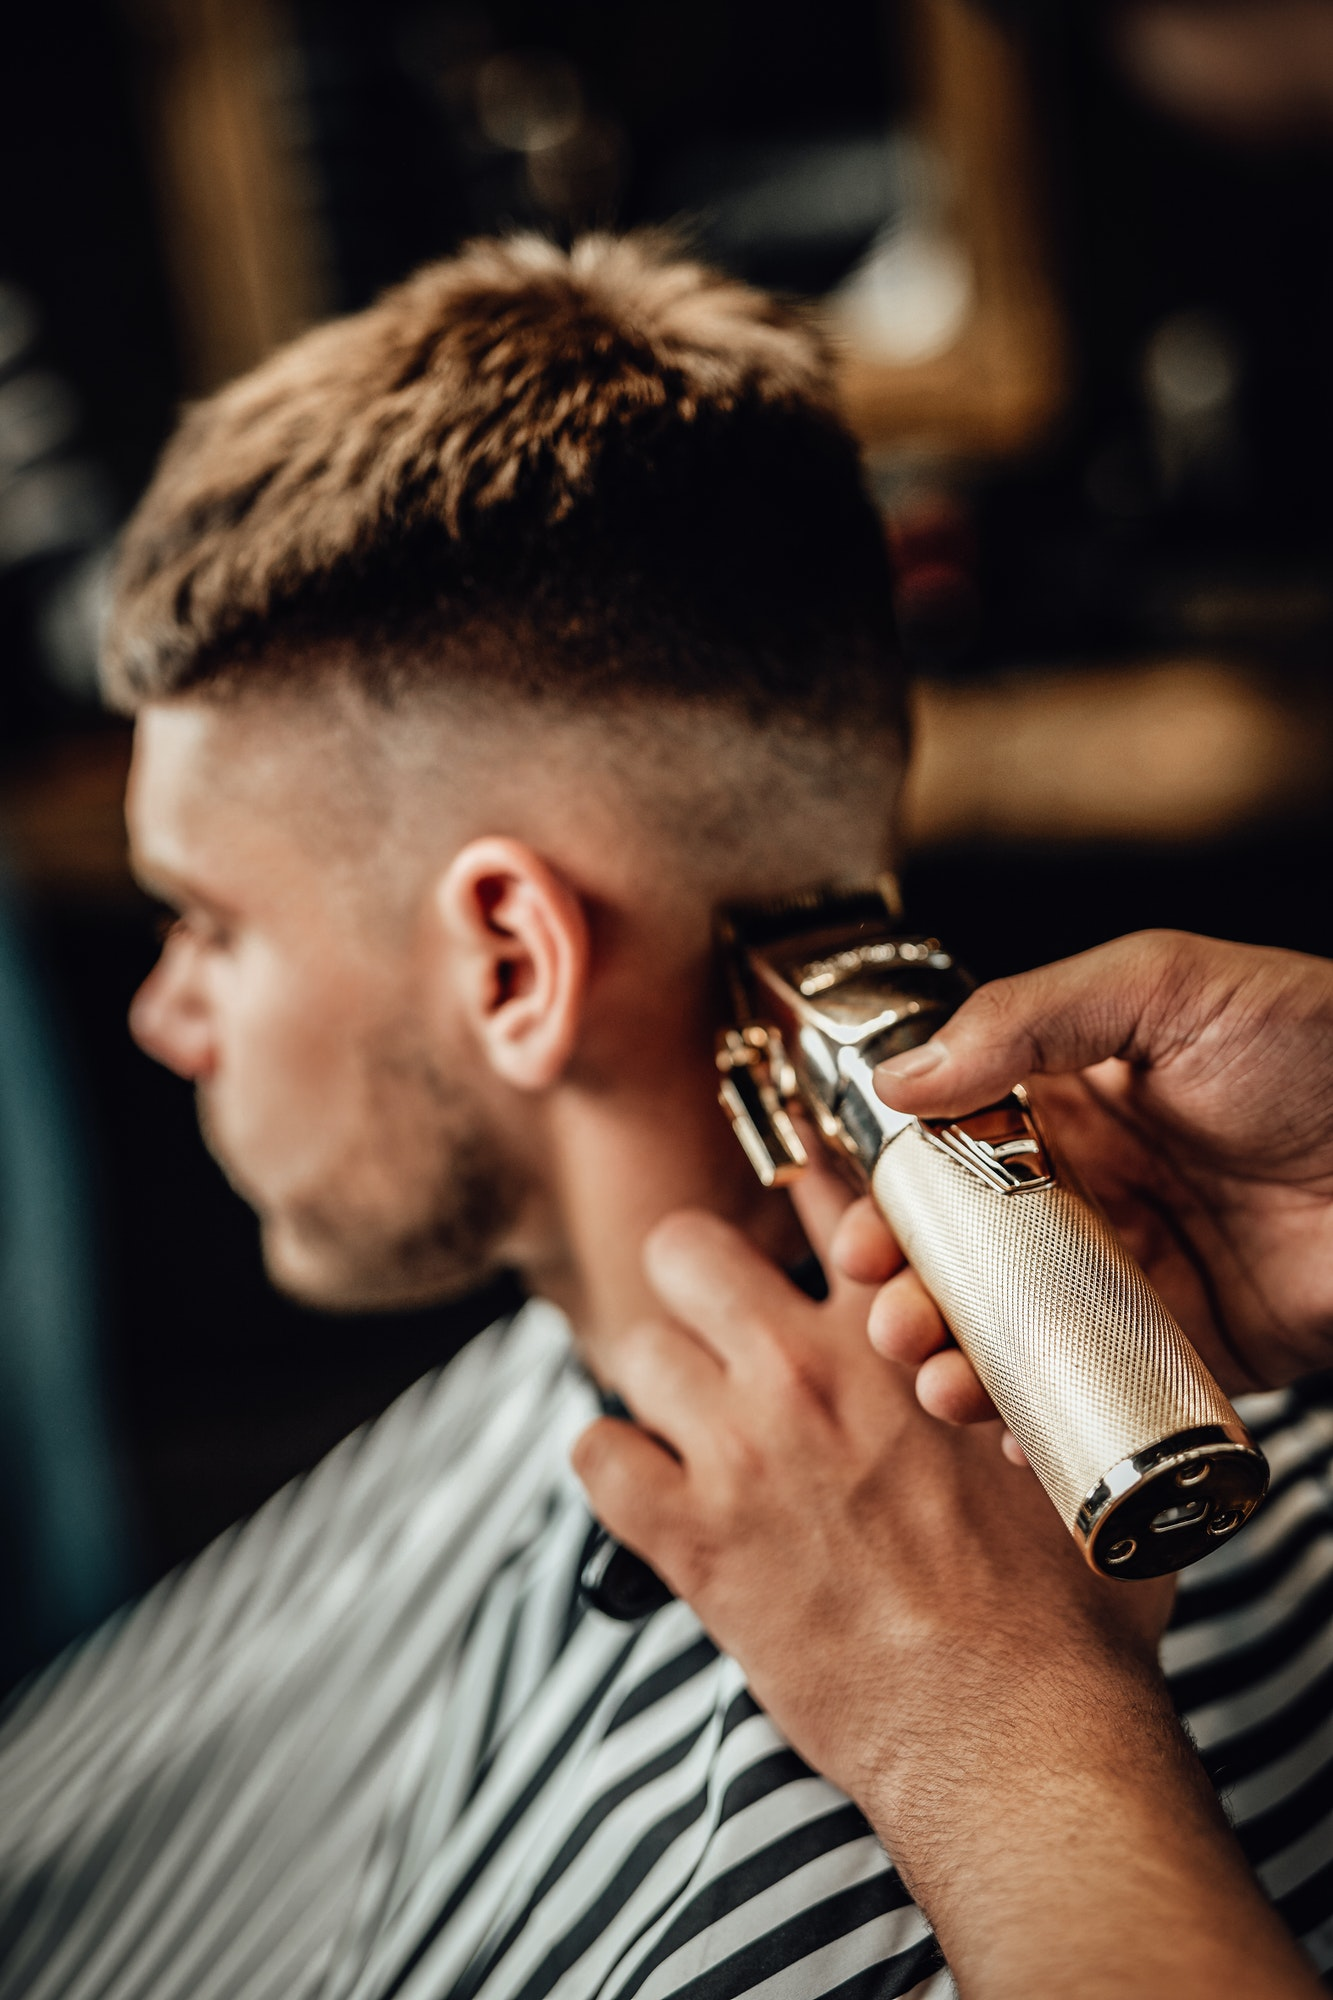 barber-cutting-guy-s-hars-with-silver-clipper-in-saloon.jpg